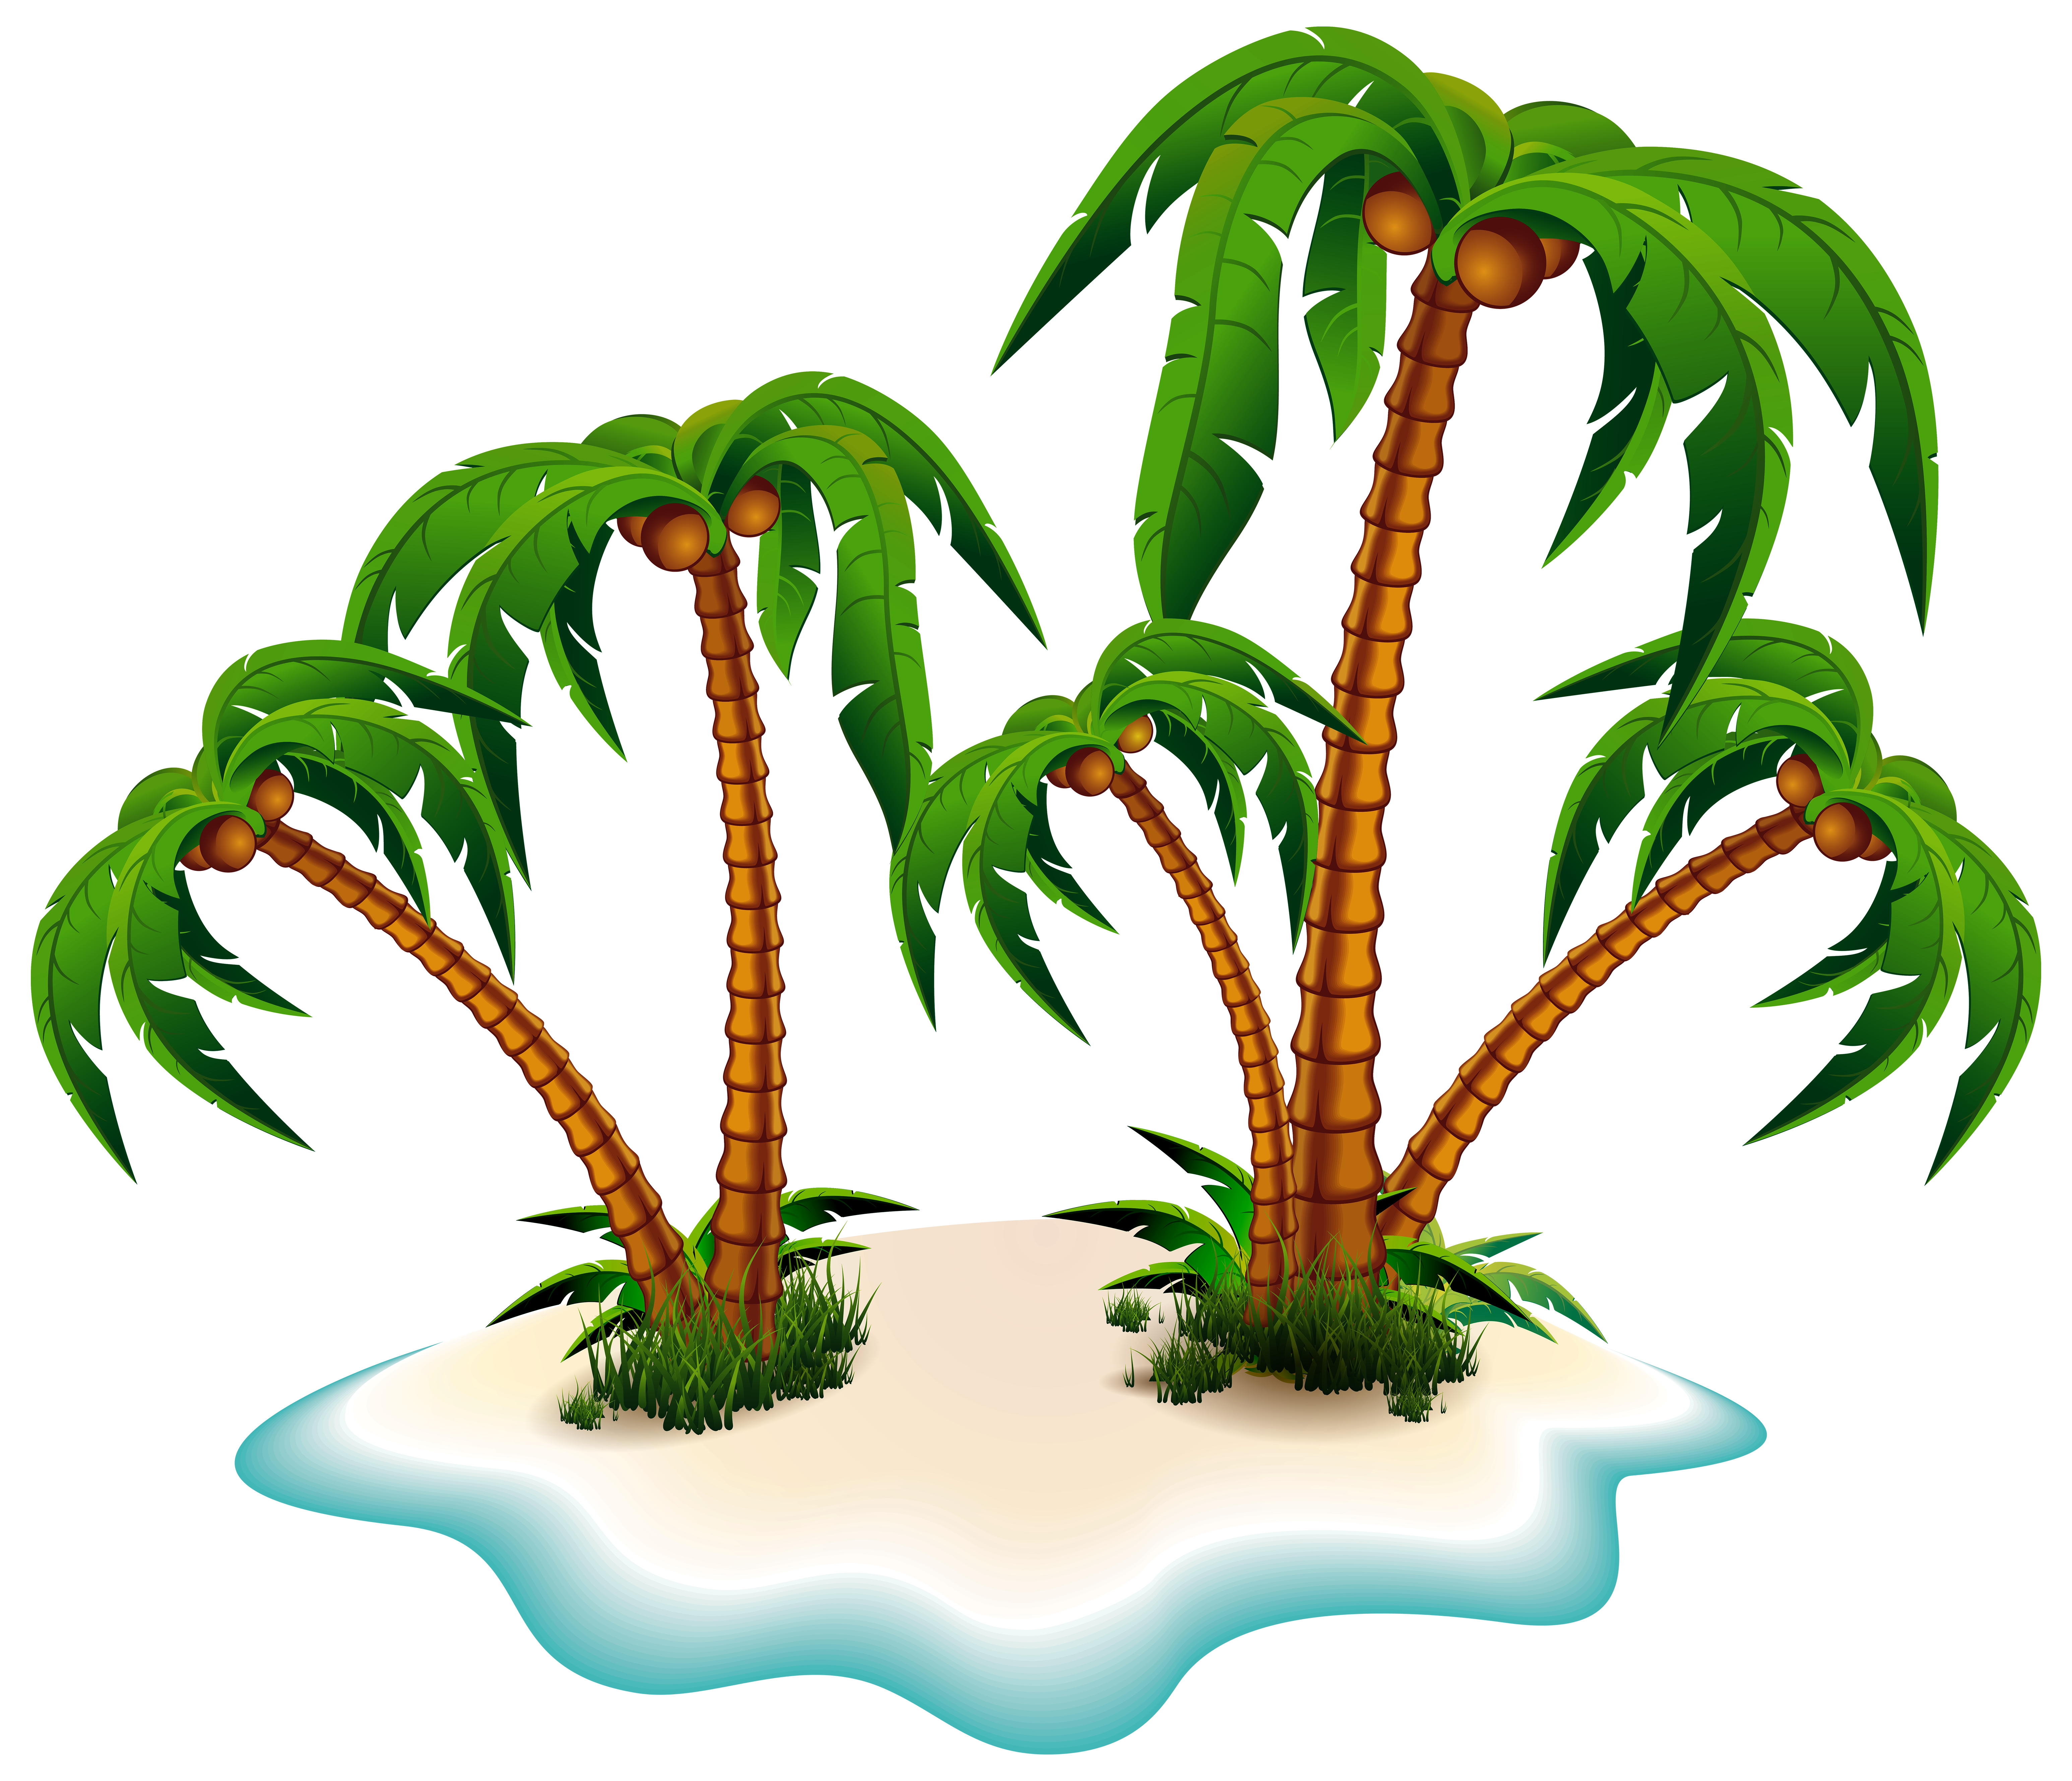 6184x5315 Island Clipart Transparent Background